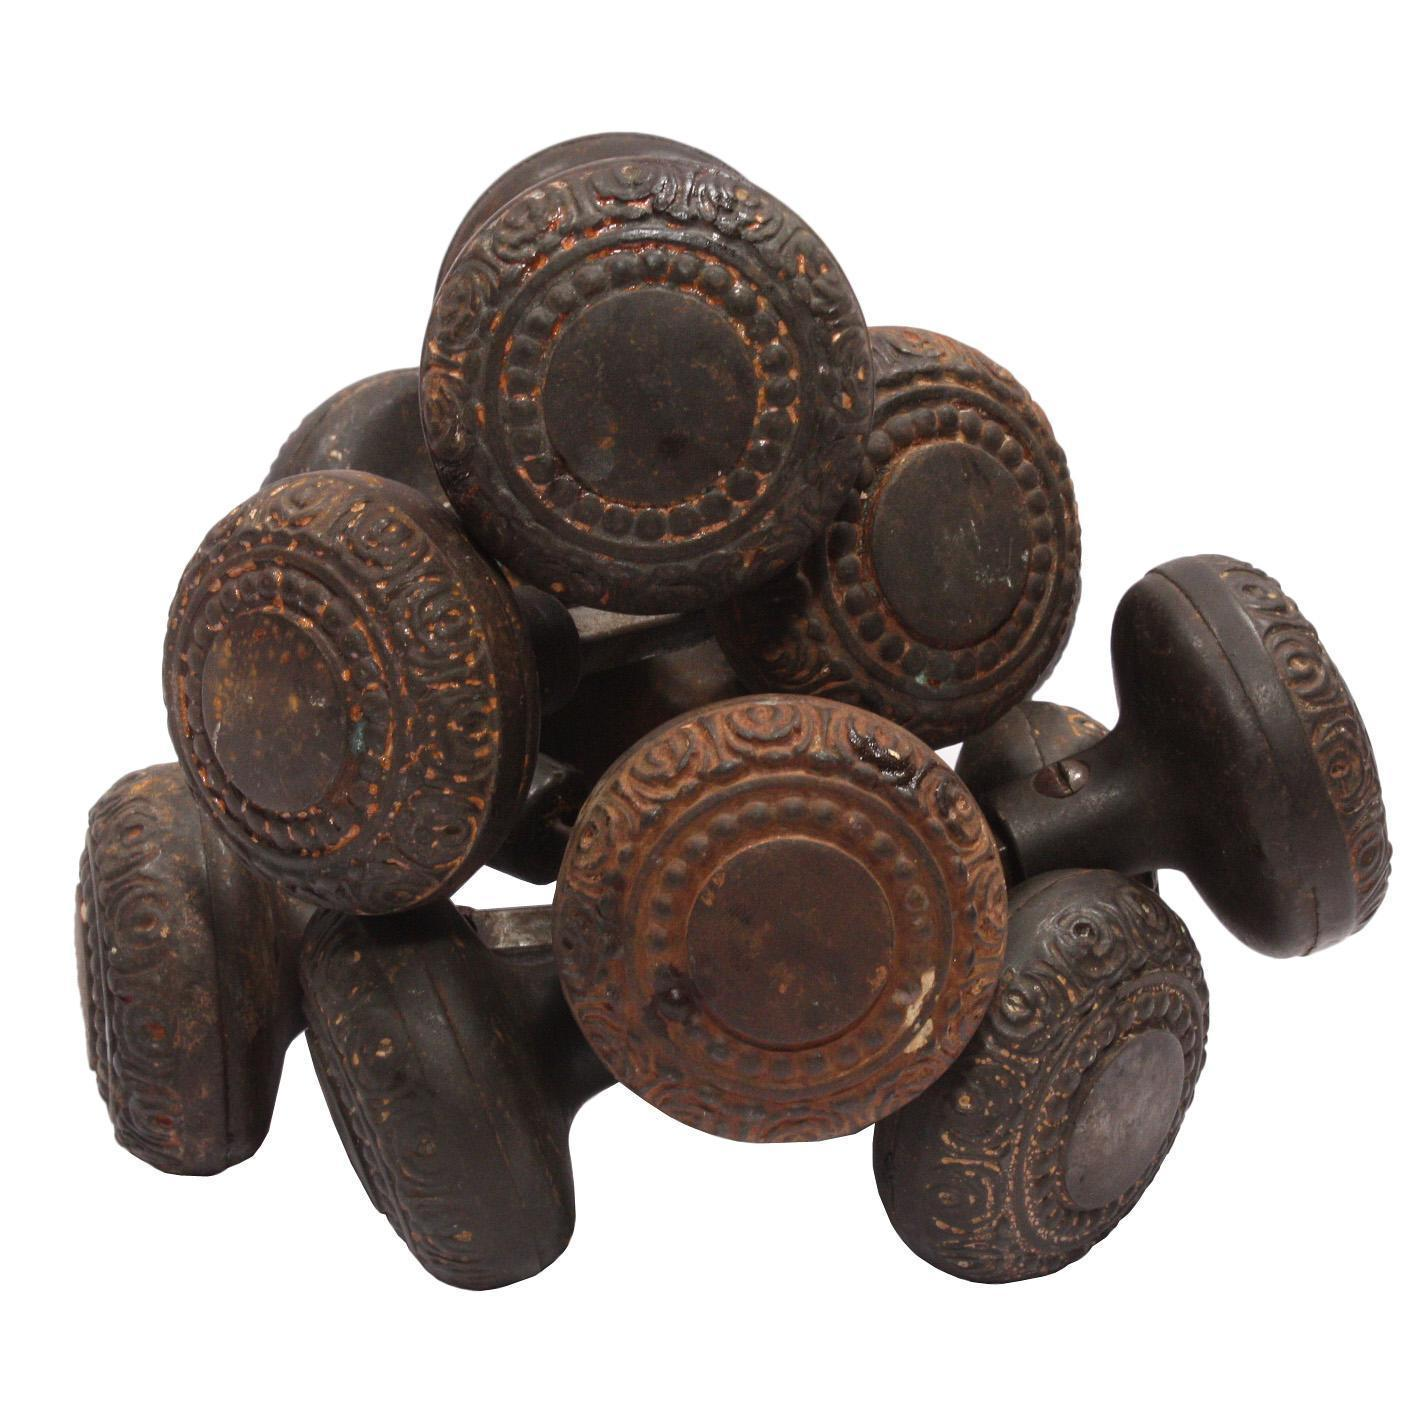 Antique Cast Iron Doorknob Sets with Beading